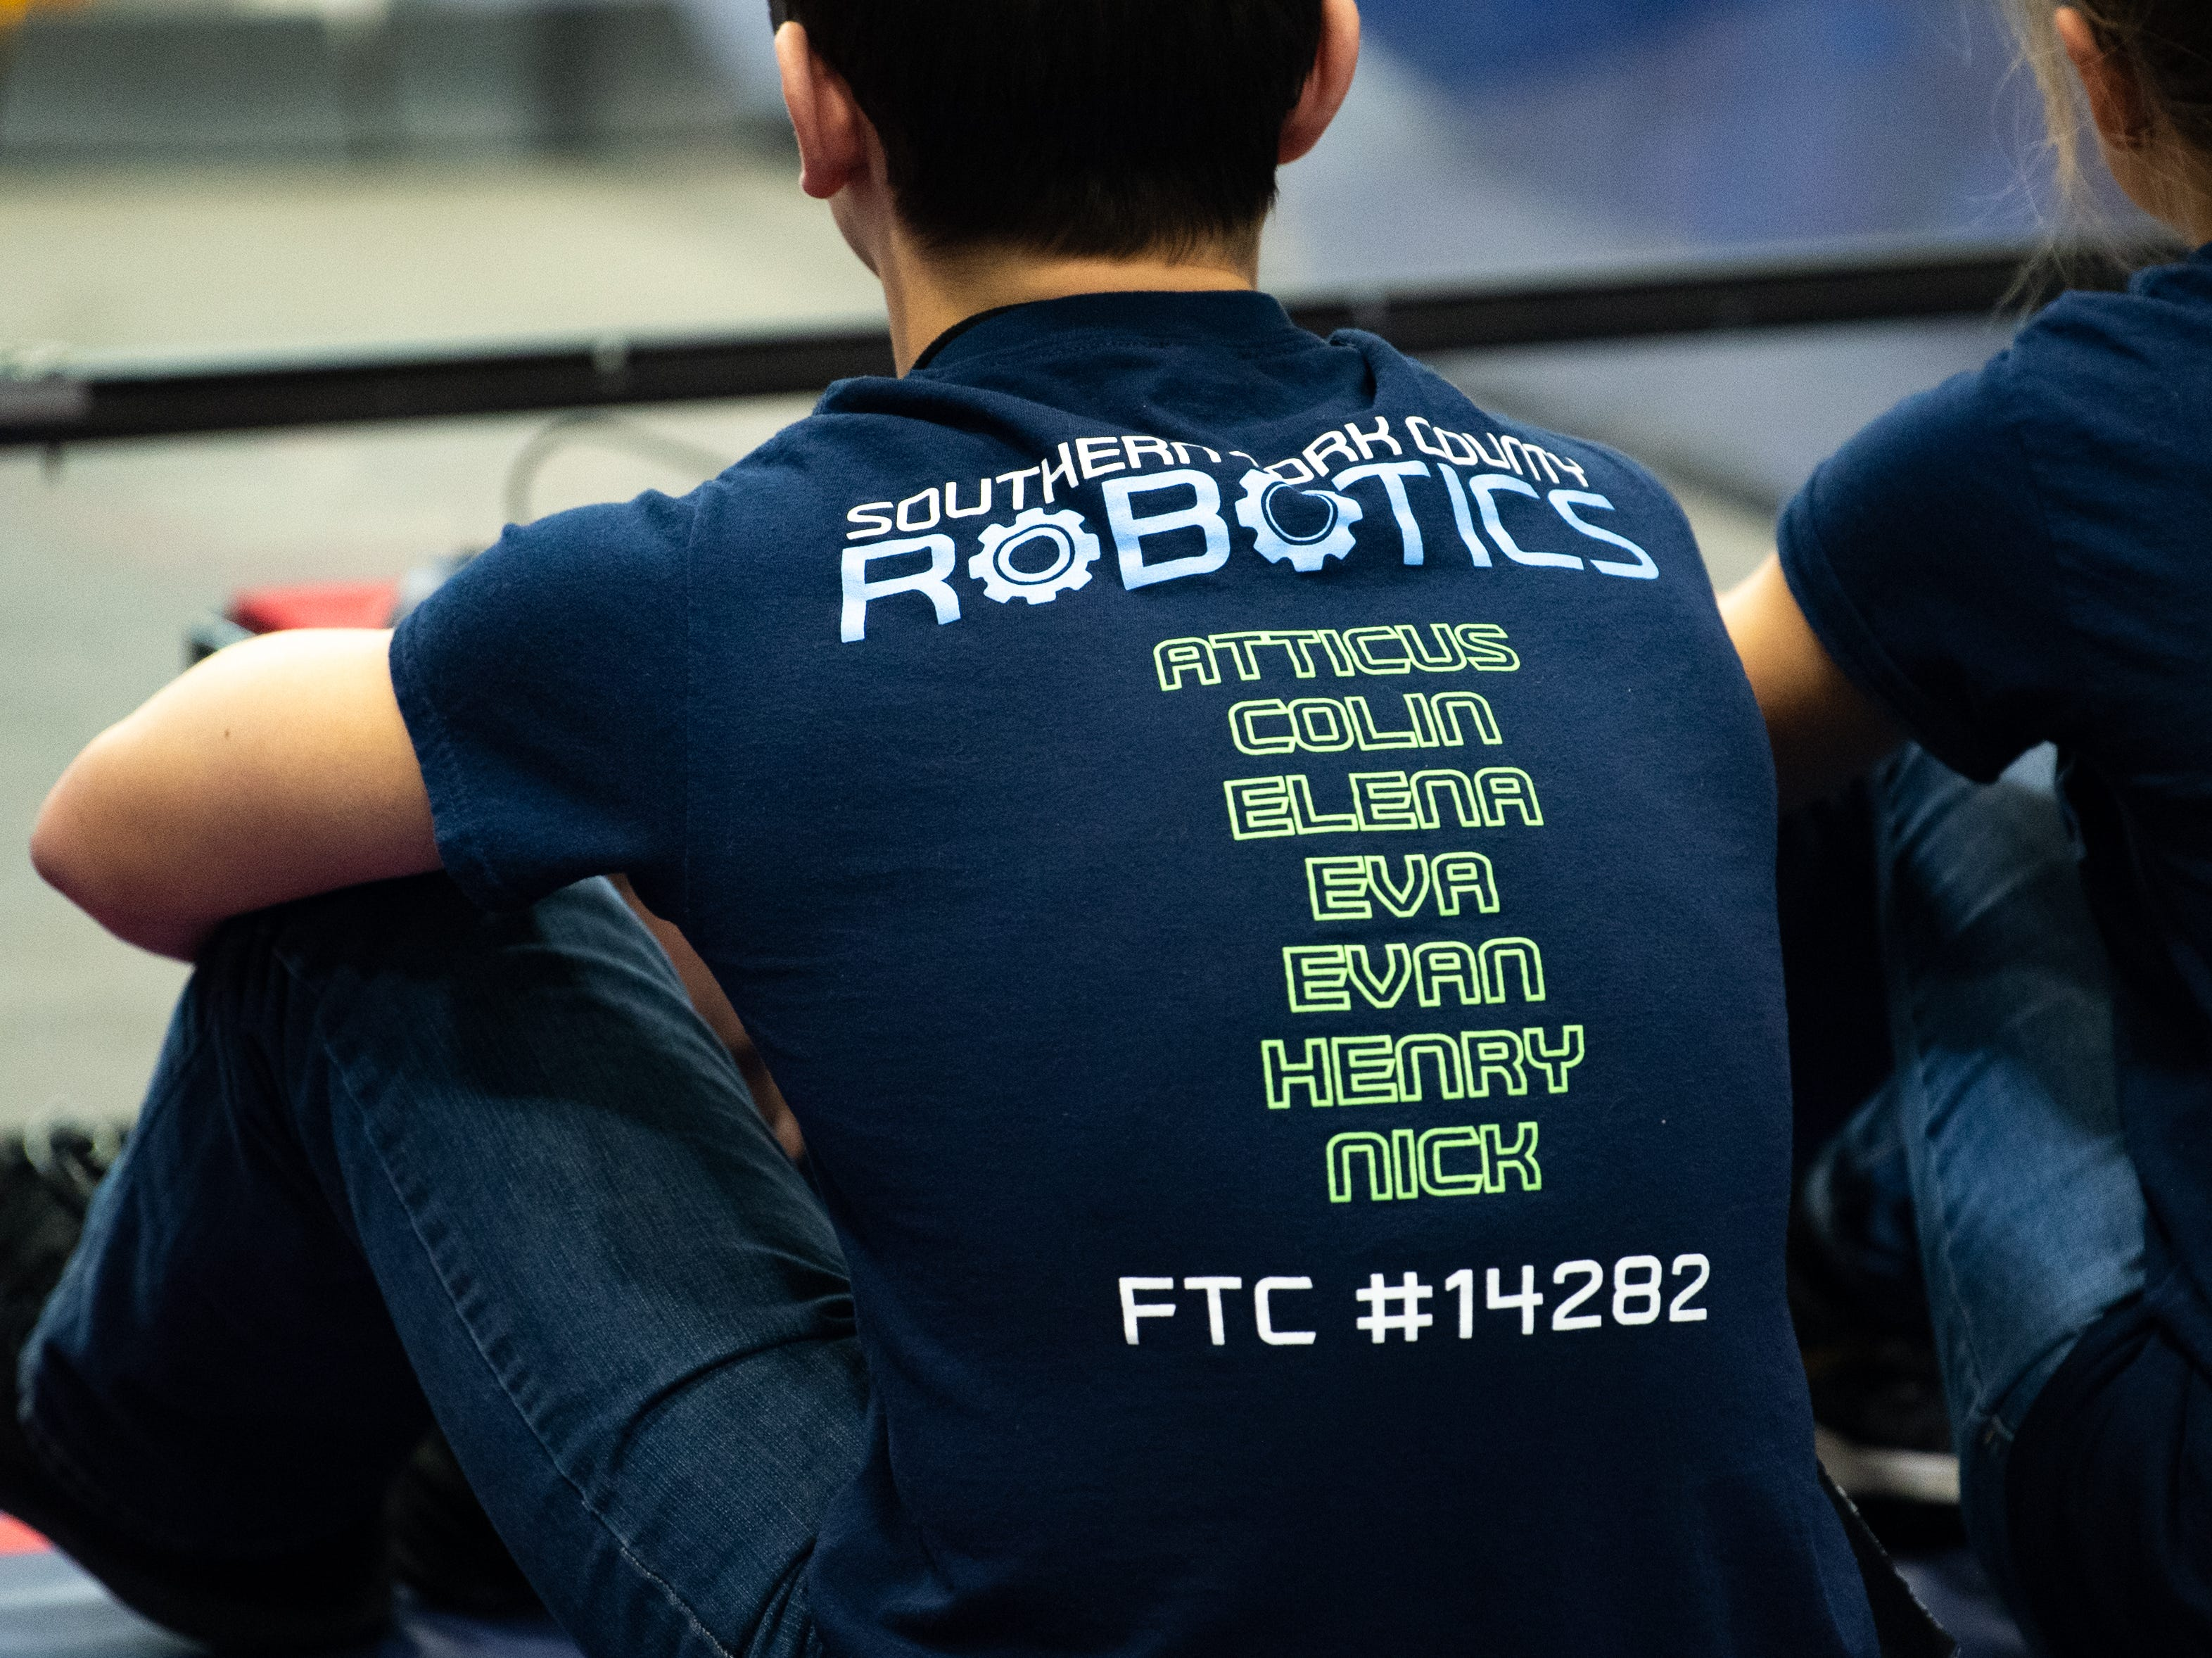 Every team has matching t-shirts that they wear with pride during the First Tech Challenge robotics competition at Penn State York, February 2, 2019.